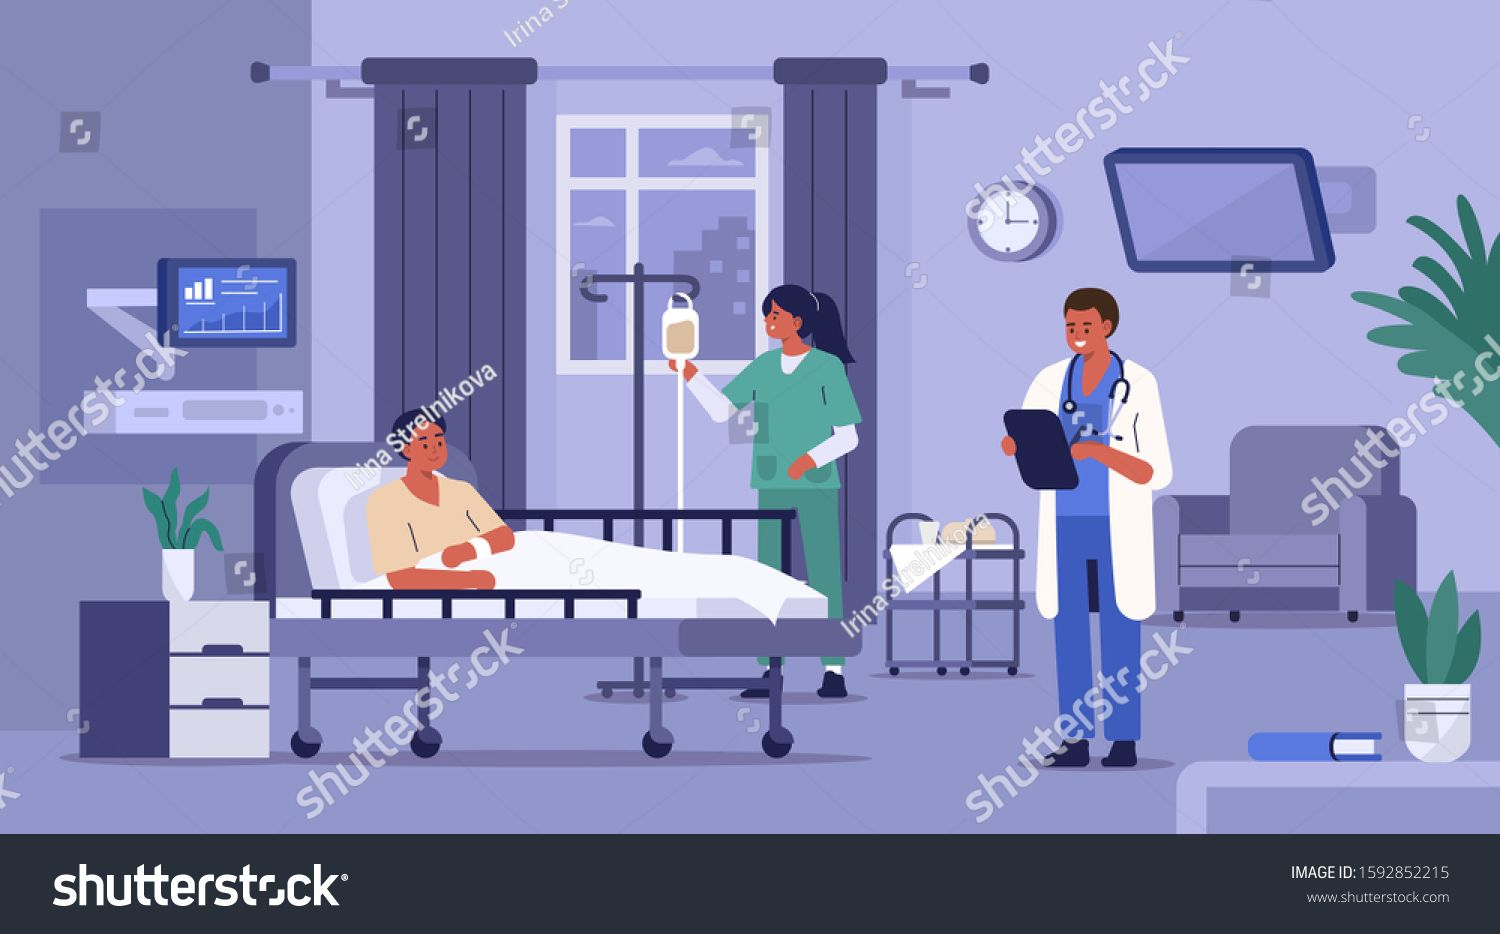 Hospitalized Patient Lying in Hospital Bed. Medical Staff